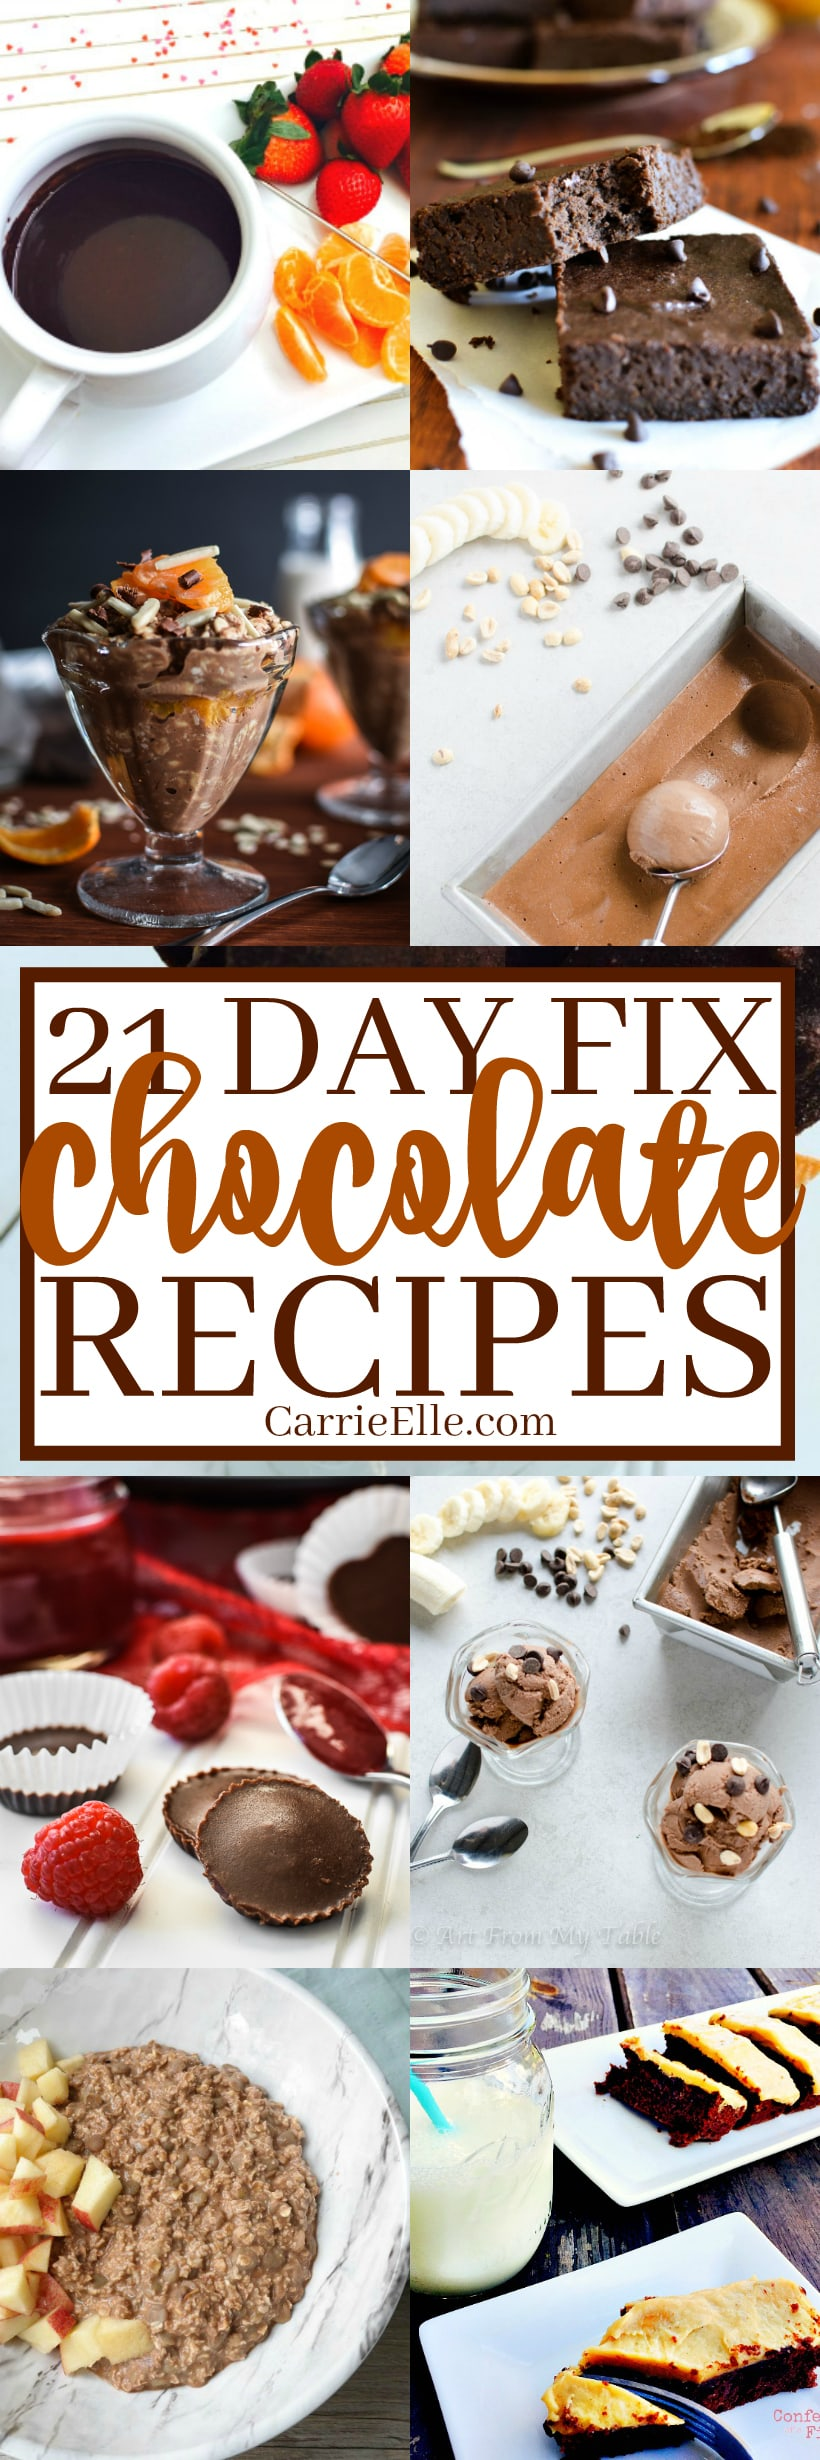 21 Day Fix Chocolate Recipes